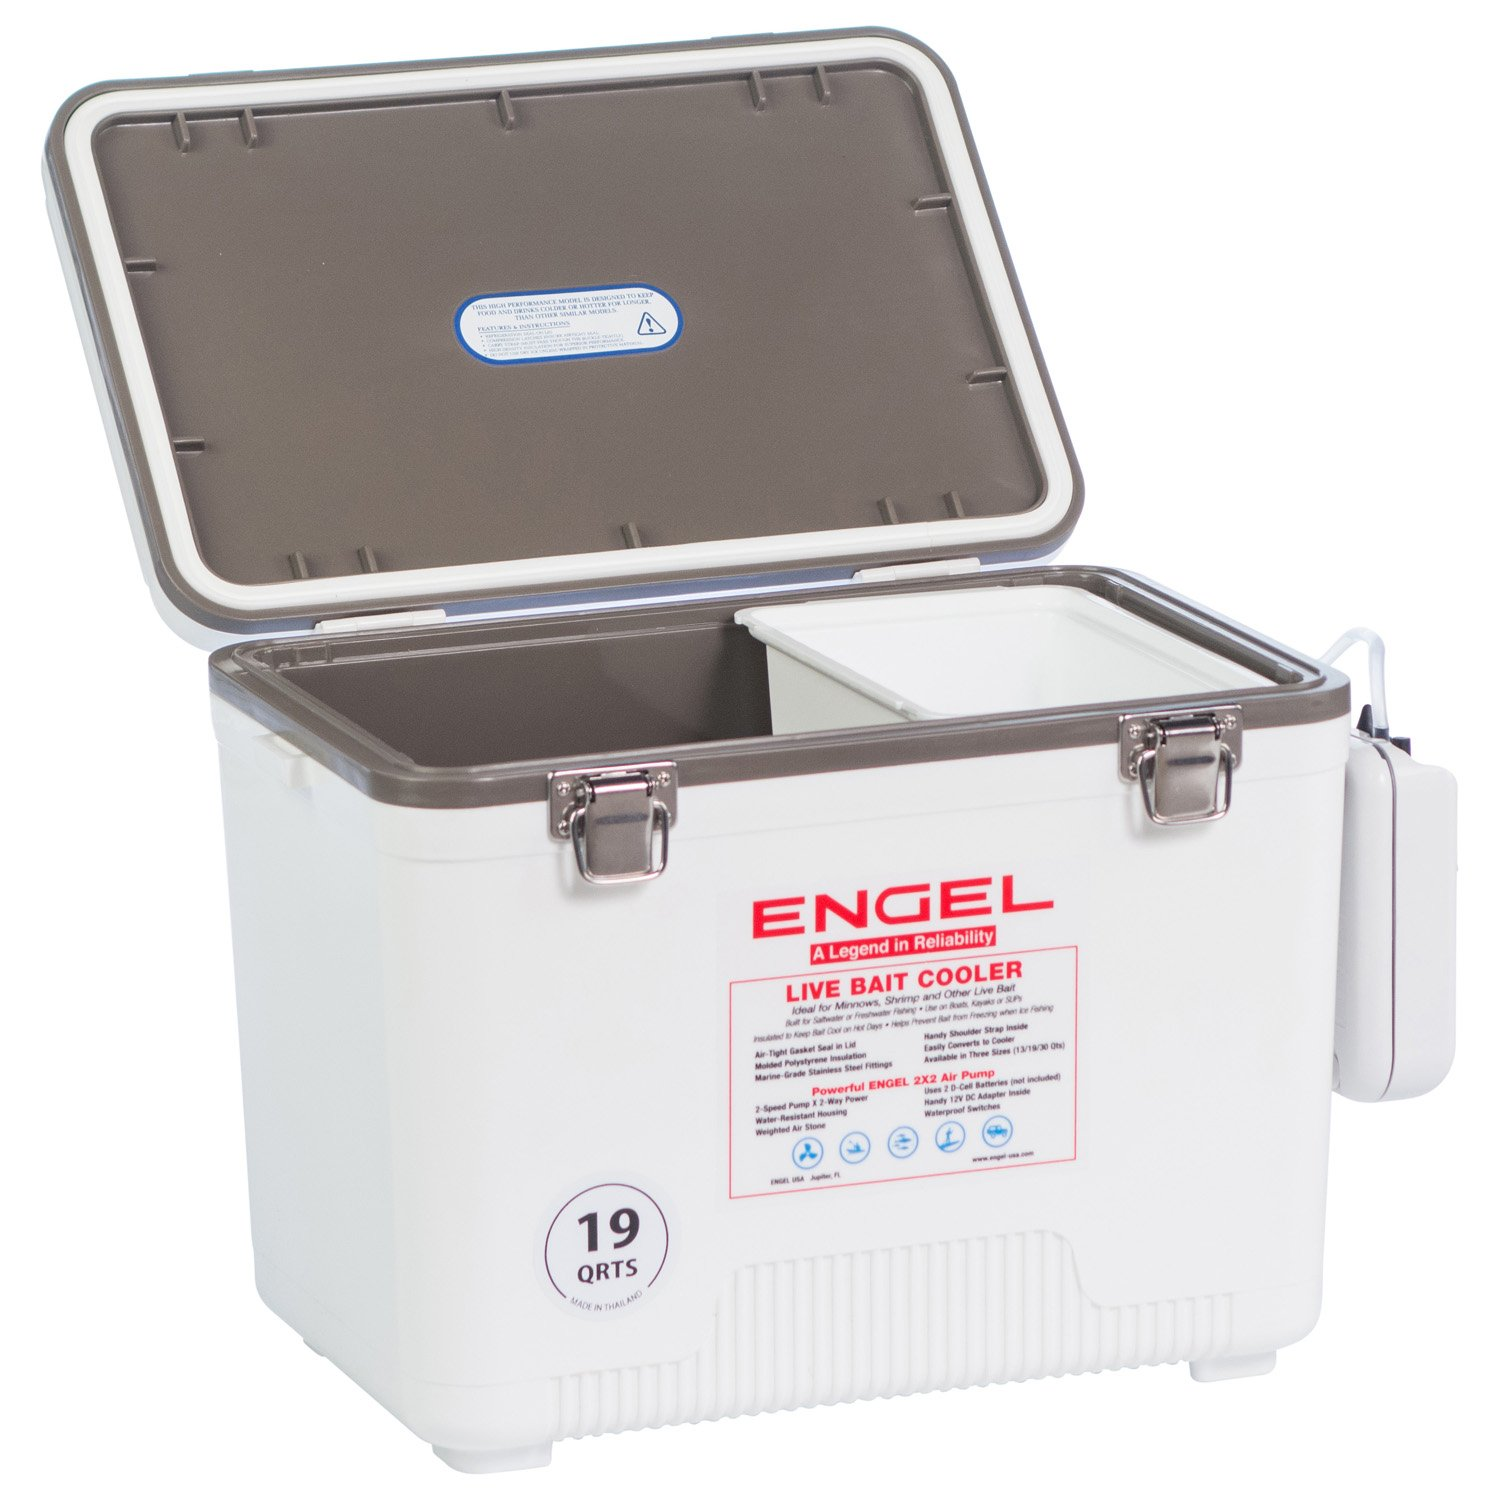 Engel Coolers Live Bait Cooler/Dry Box with Air Pump